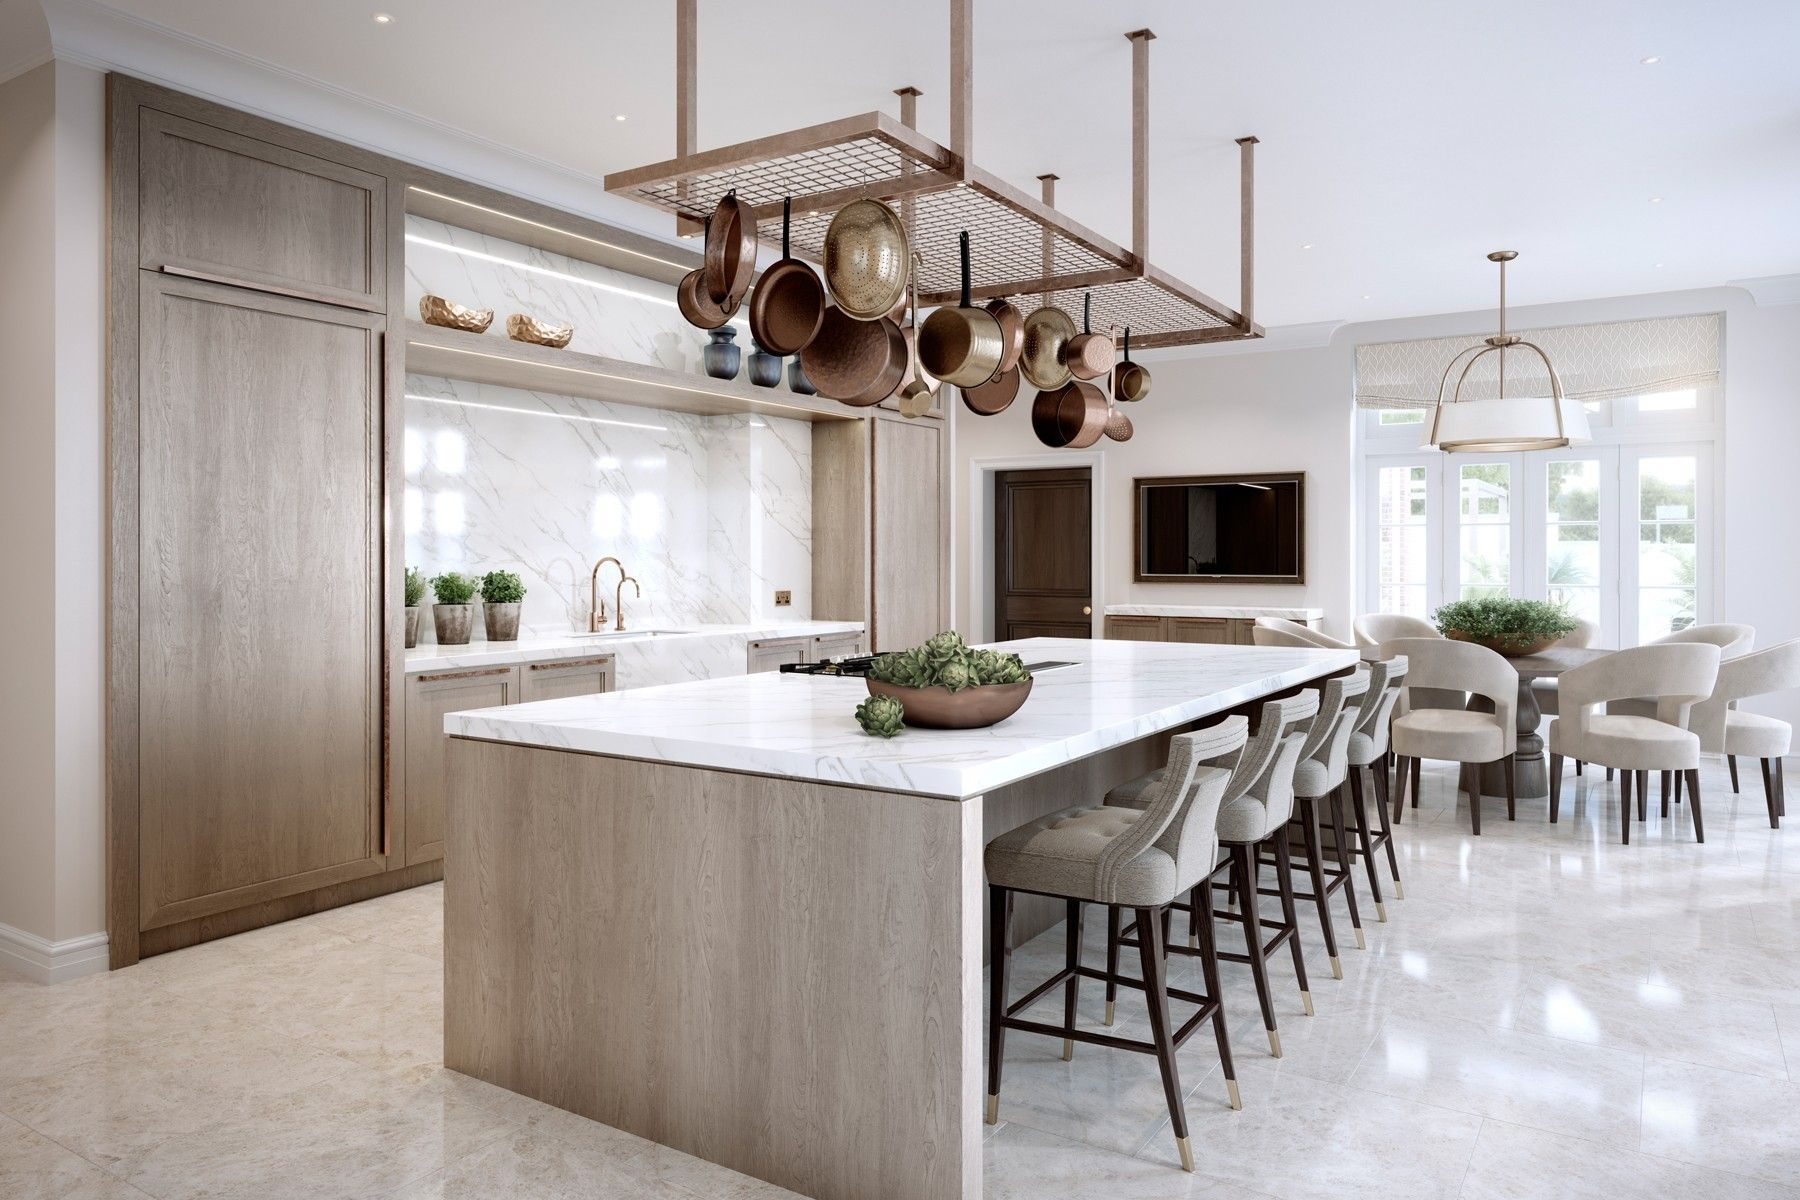 Kitchen seating ideas surrey family home luxury interior design laura hammett bigger luxury